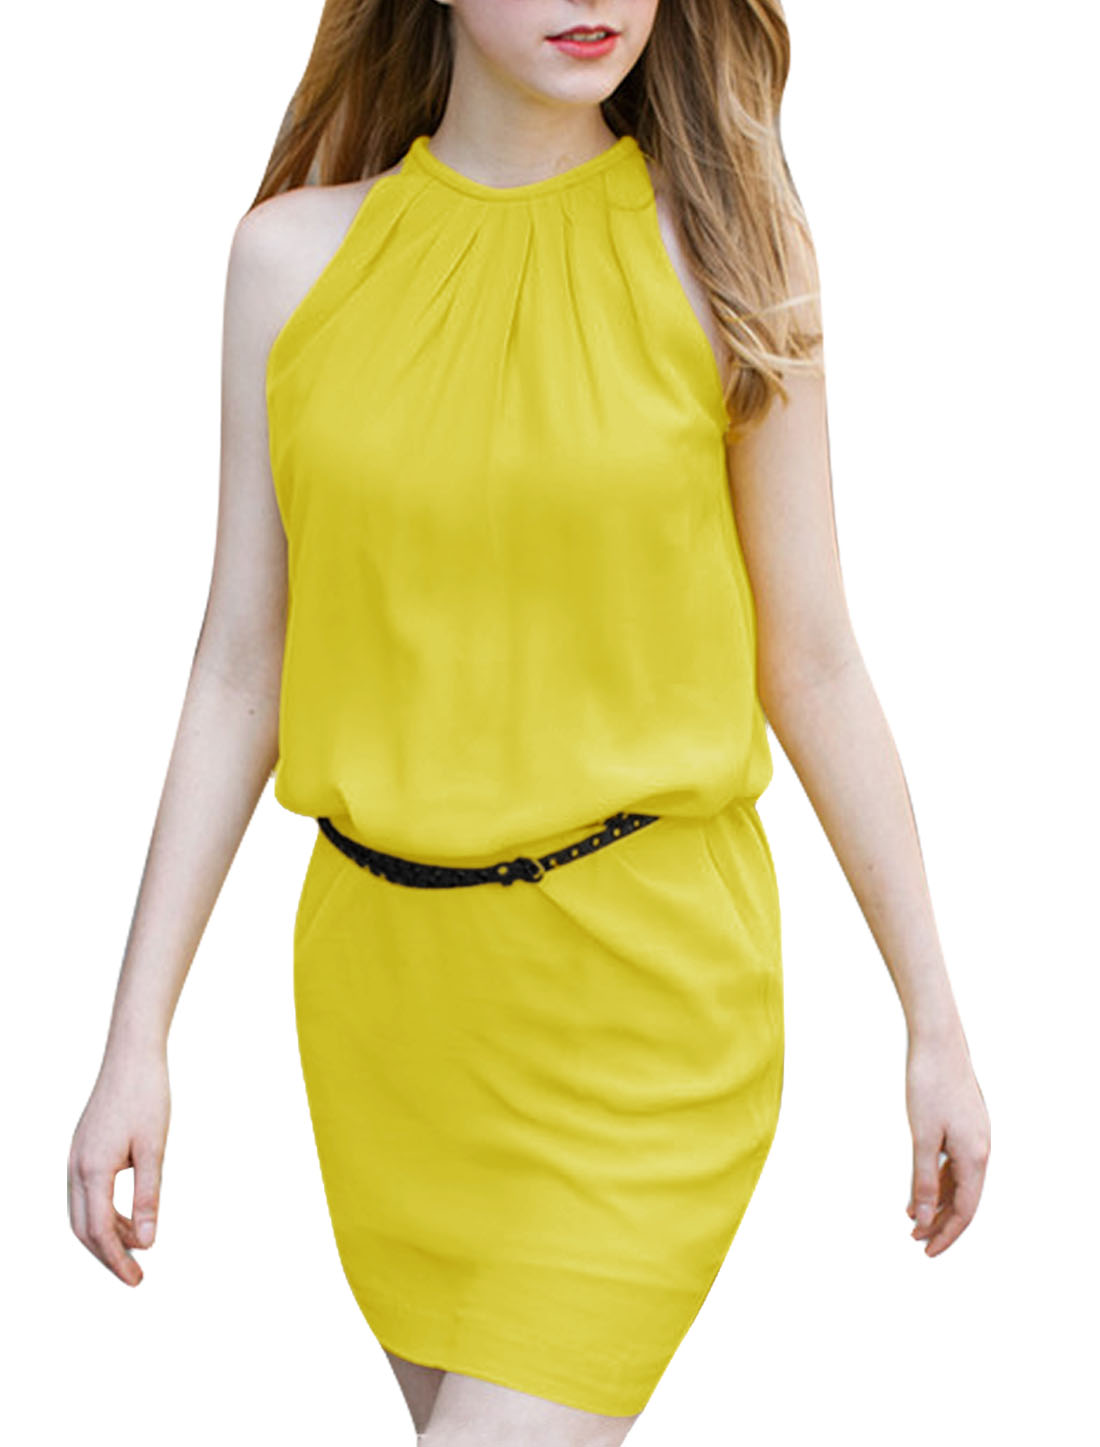 Women Zip Up Back Sleeveless Casual Shift Dress Yellow L